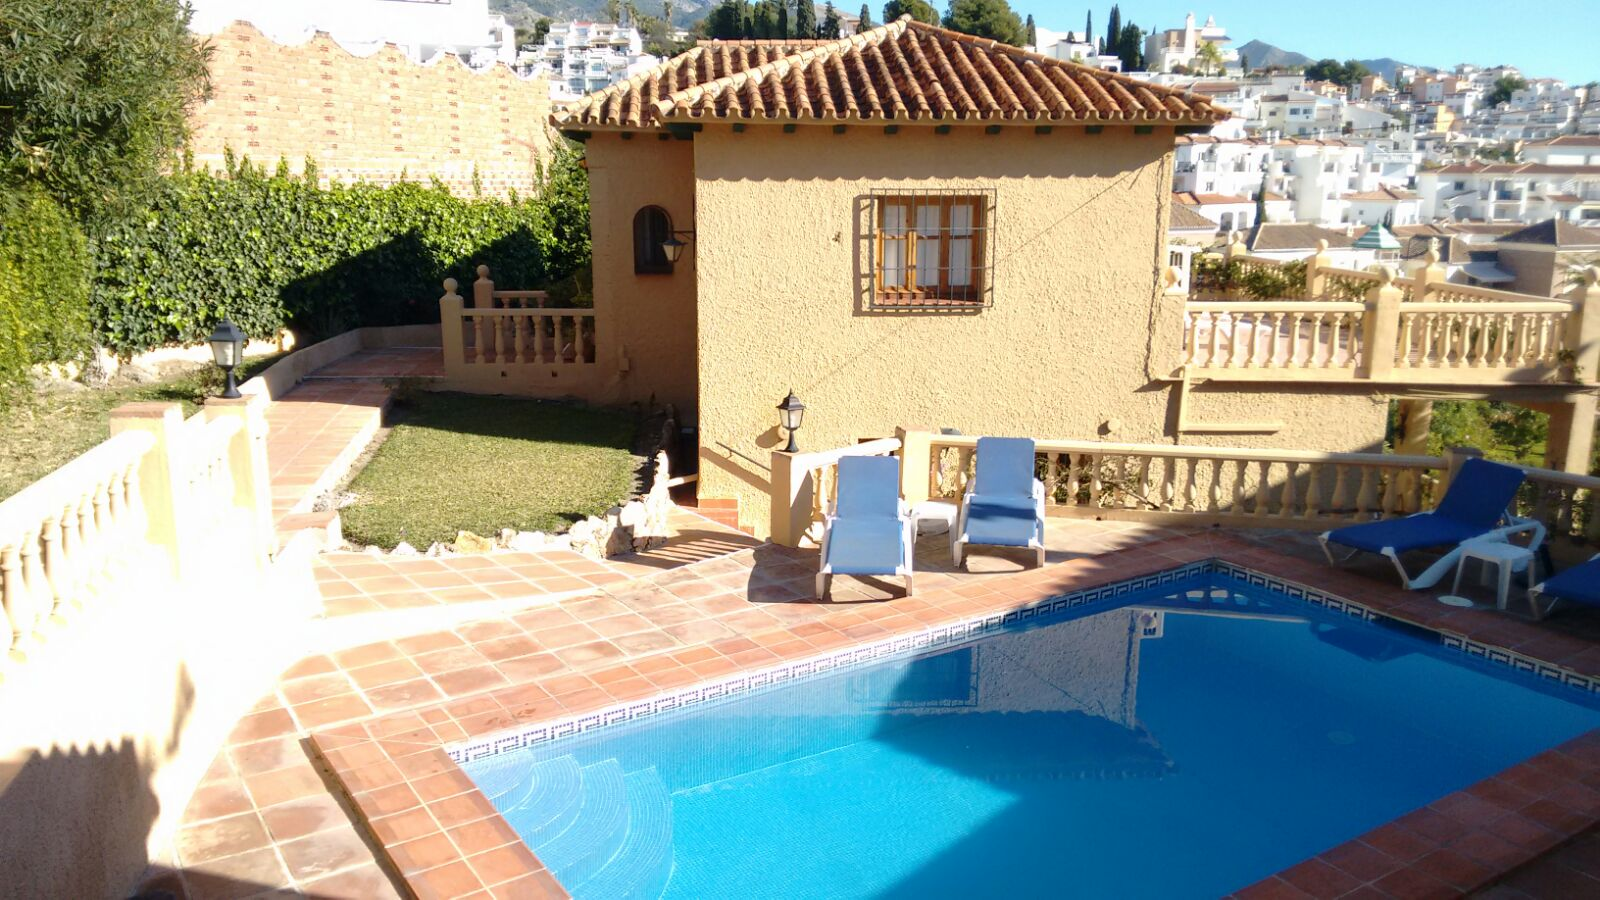 MM16 Holiday villa for rent in Nerja